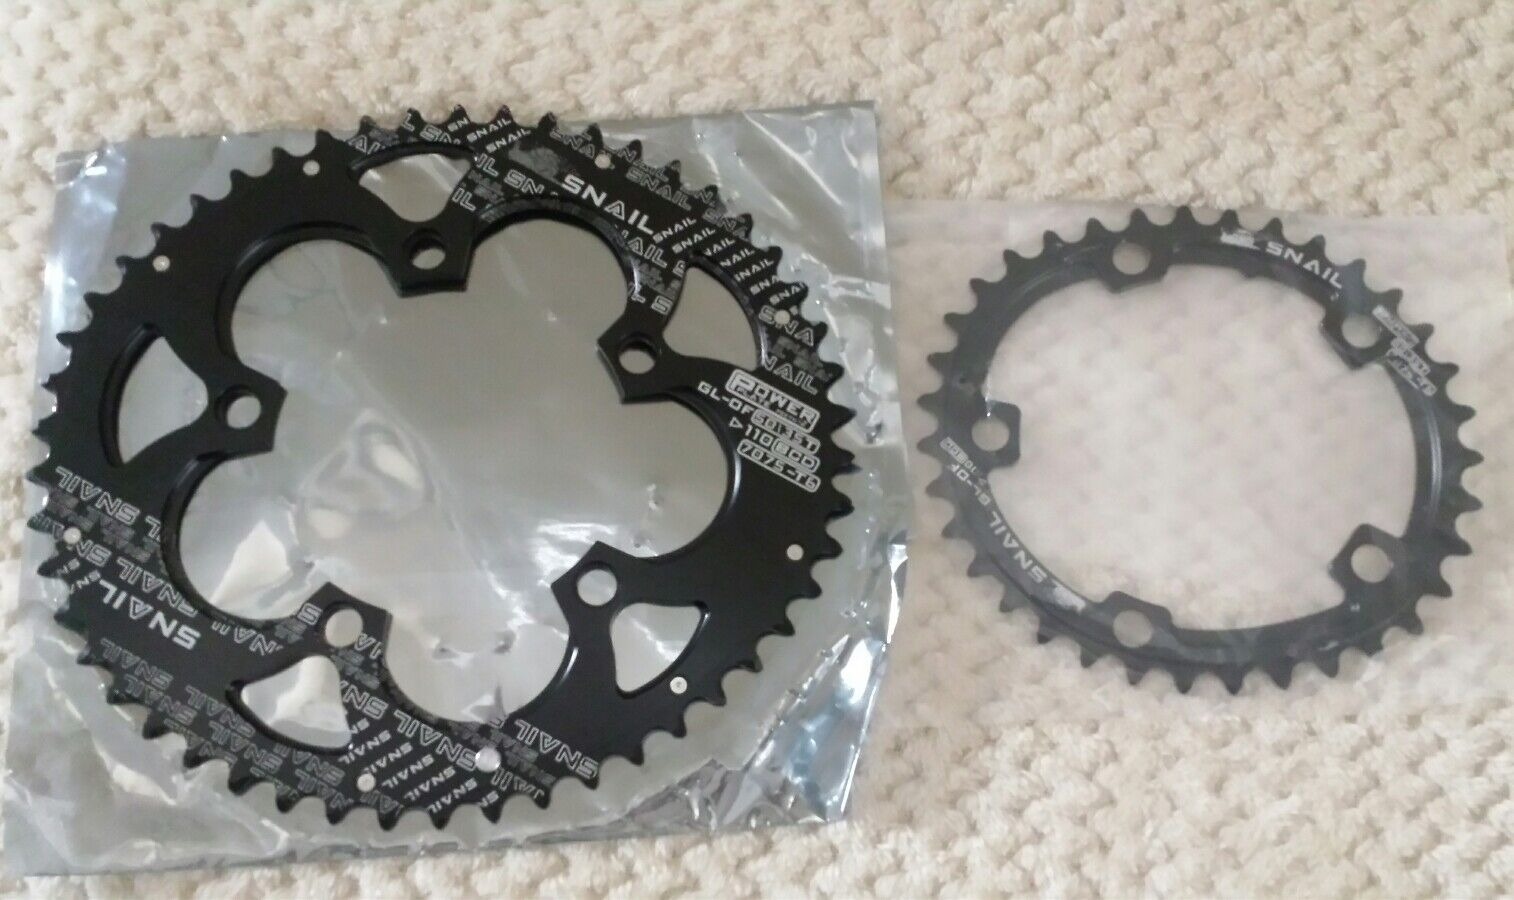 SNAIL VXM Road Bike 50 35 Double Oval Chainrings 110BCD 9 10 11 Chain Ring Super